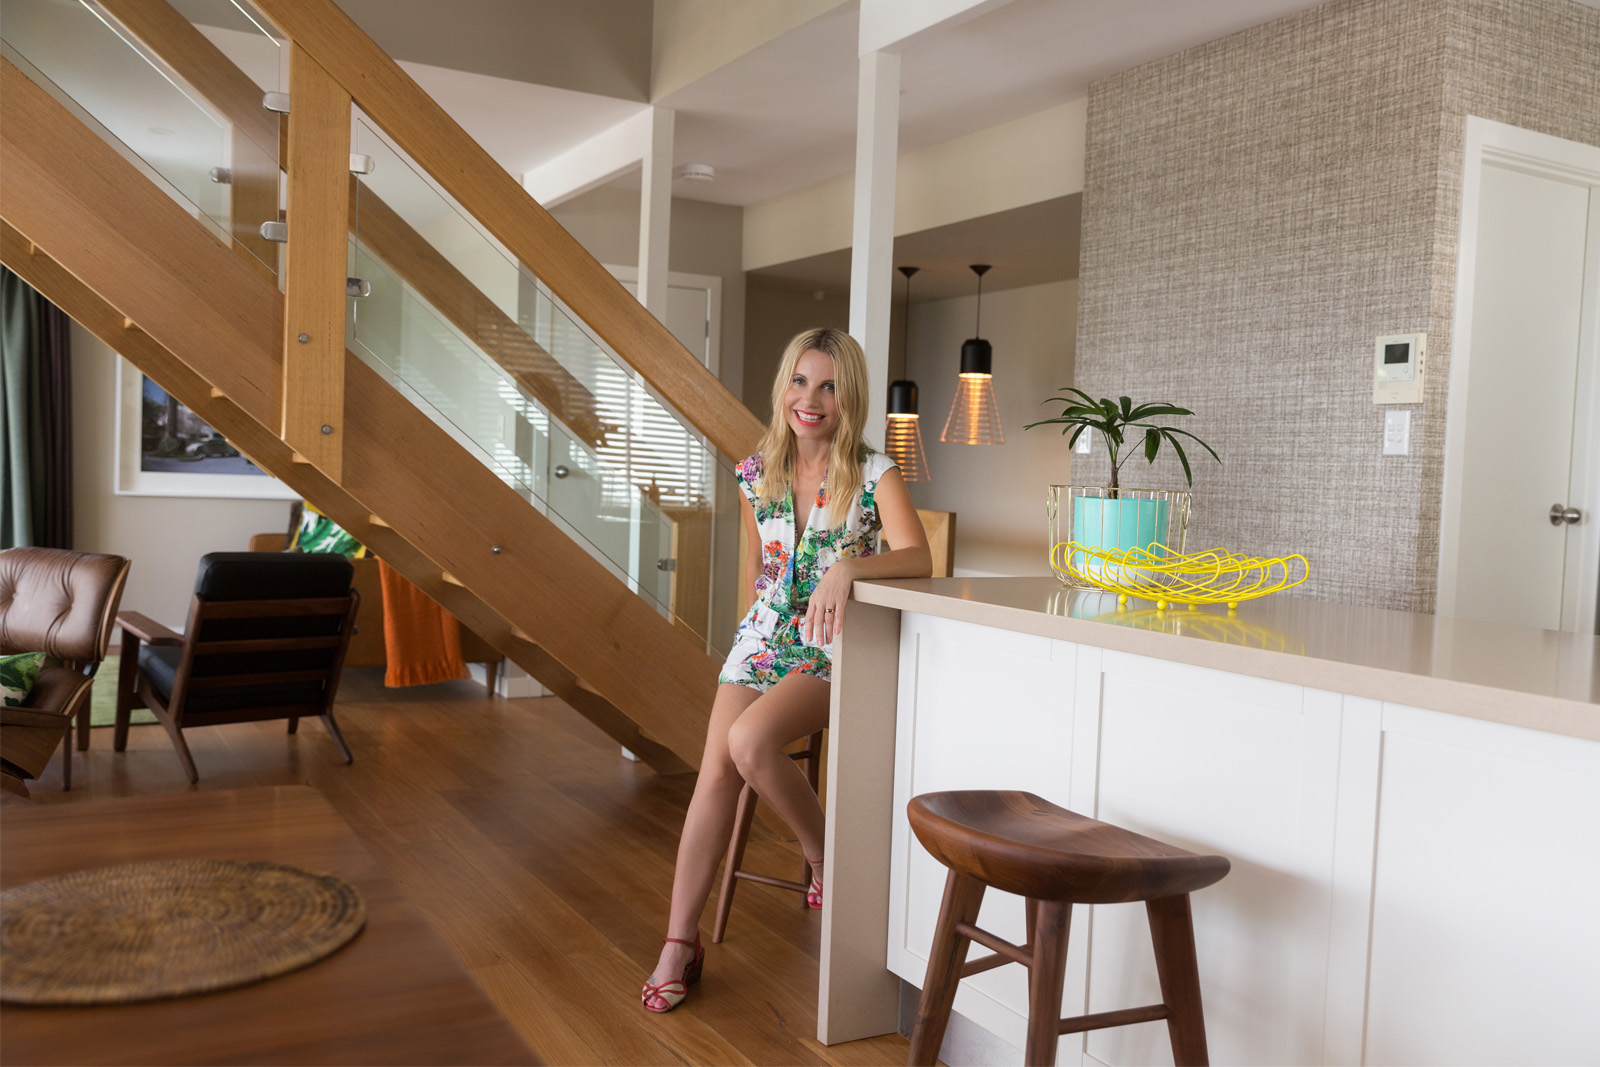 Cherie-Barber_Renovating-For-Profit_GET-THE-LOOK-Cherie-Barbers-Byron-Bay-Holiday-Home_Cherie